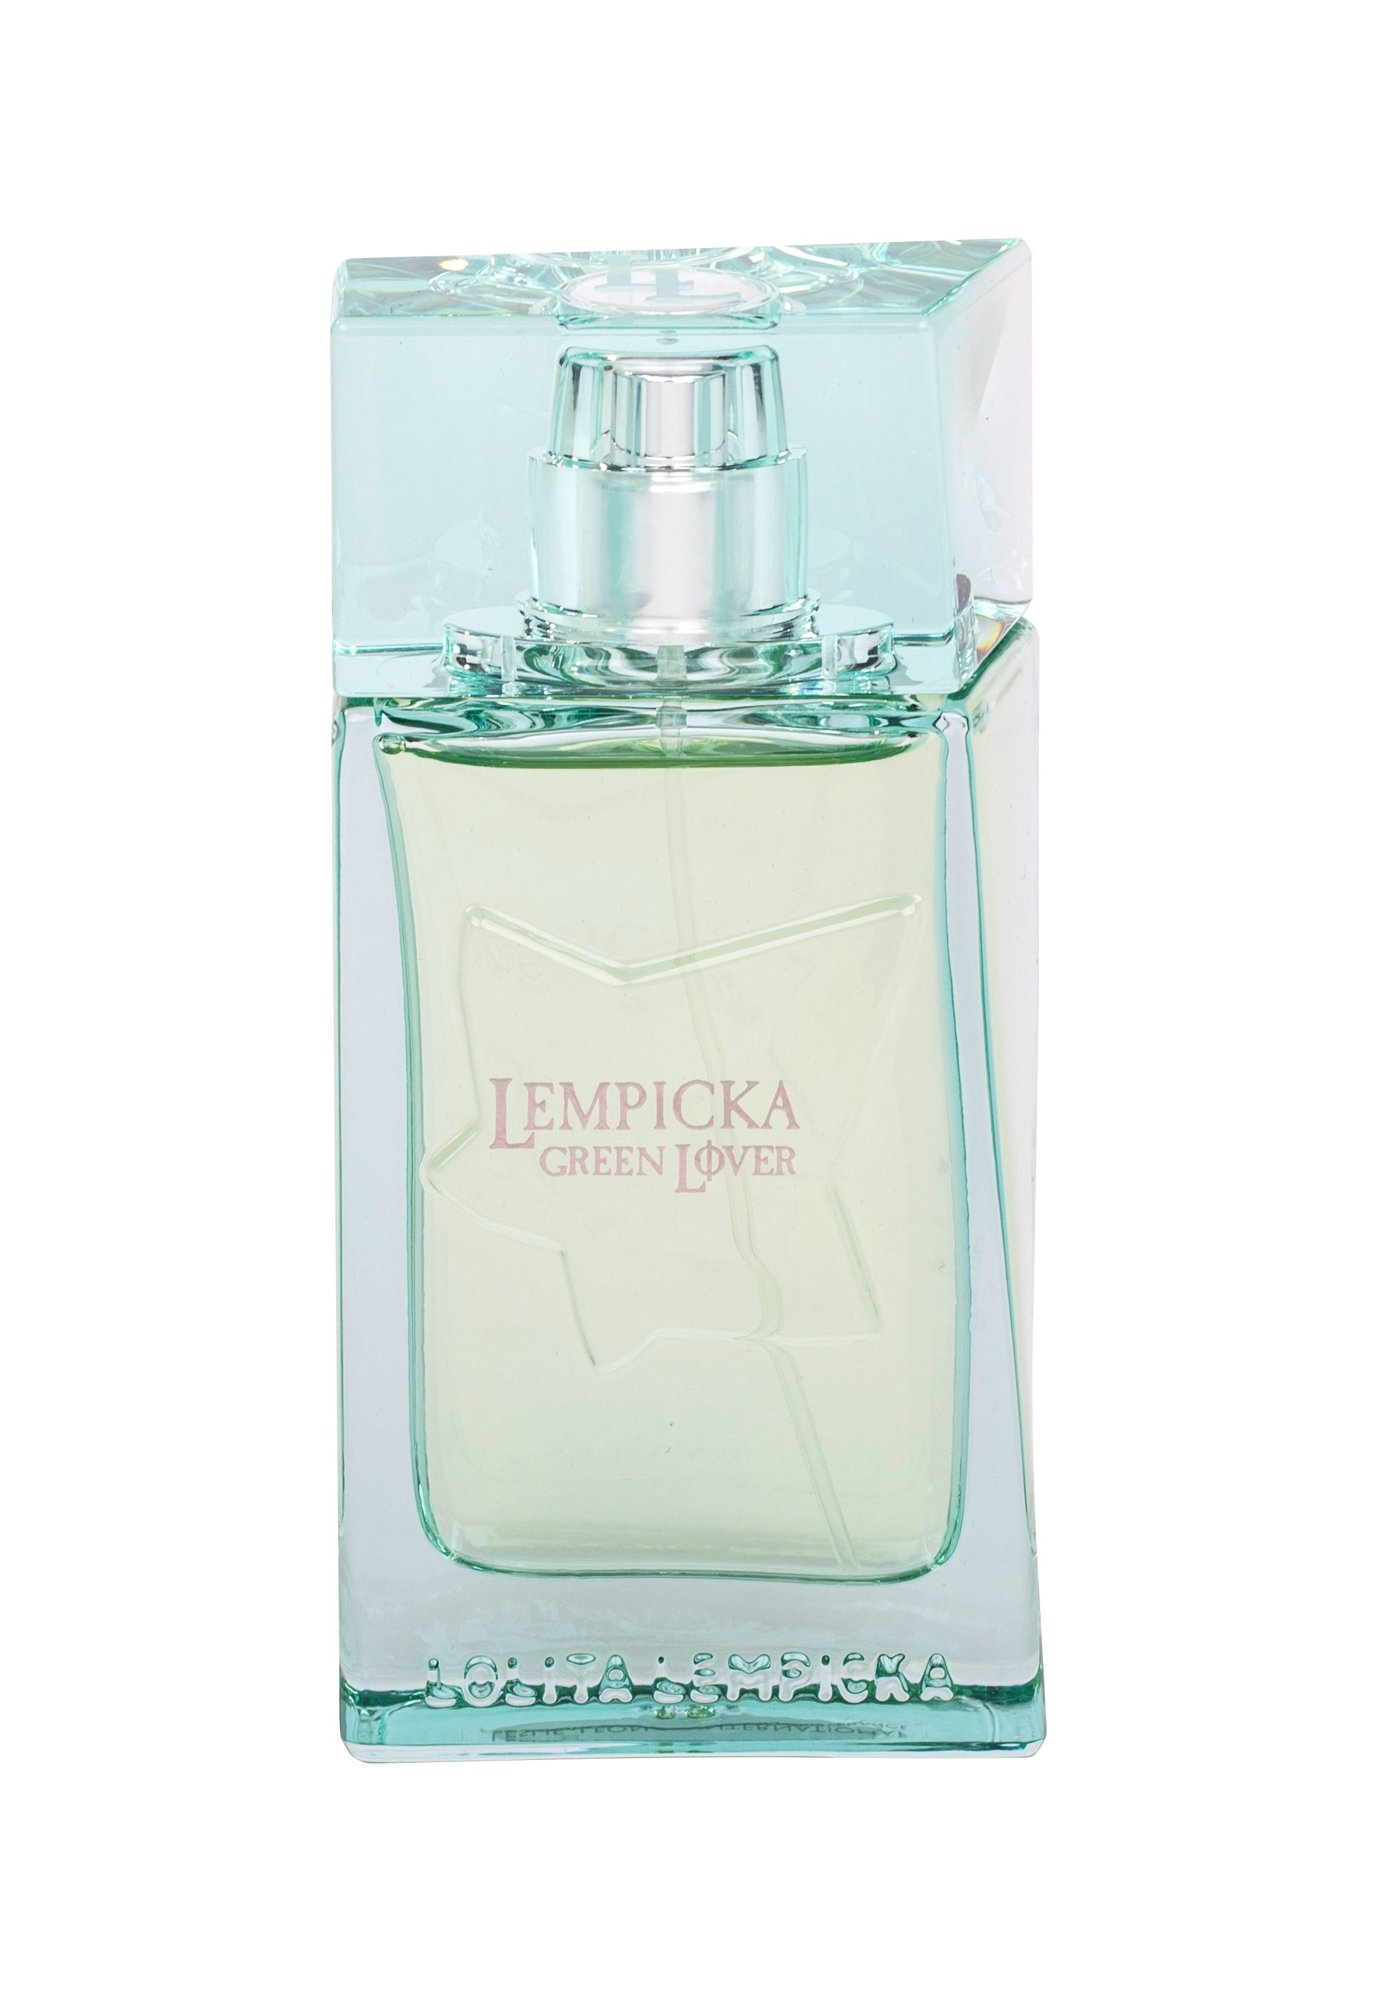 Lolita Lempicka Green Lover Eau de Toilette 50ml